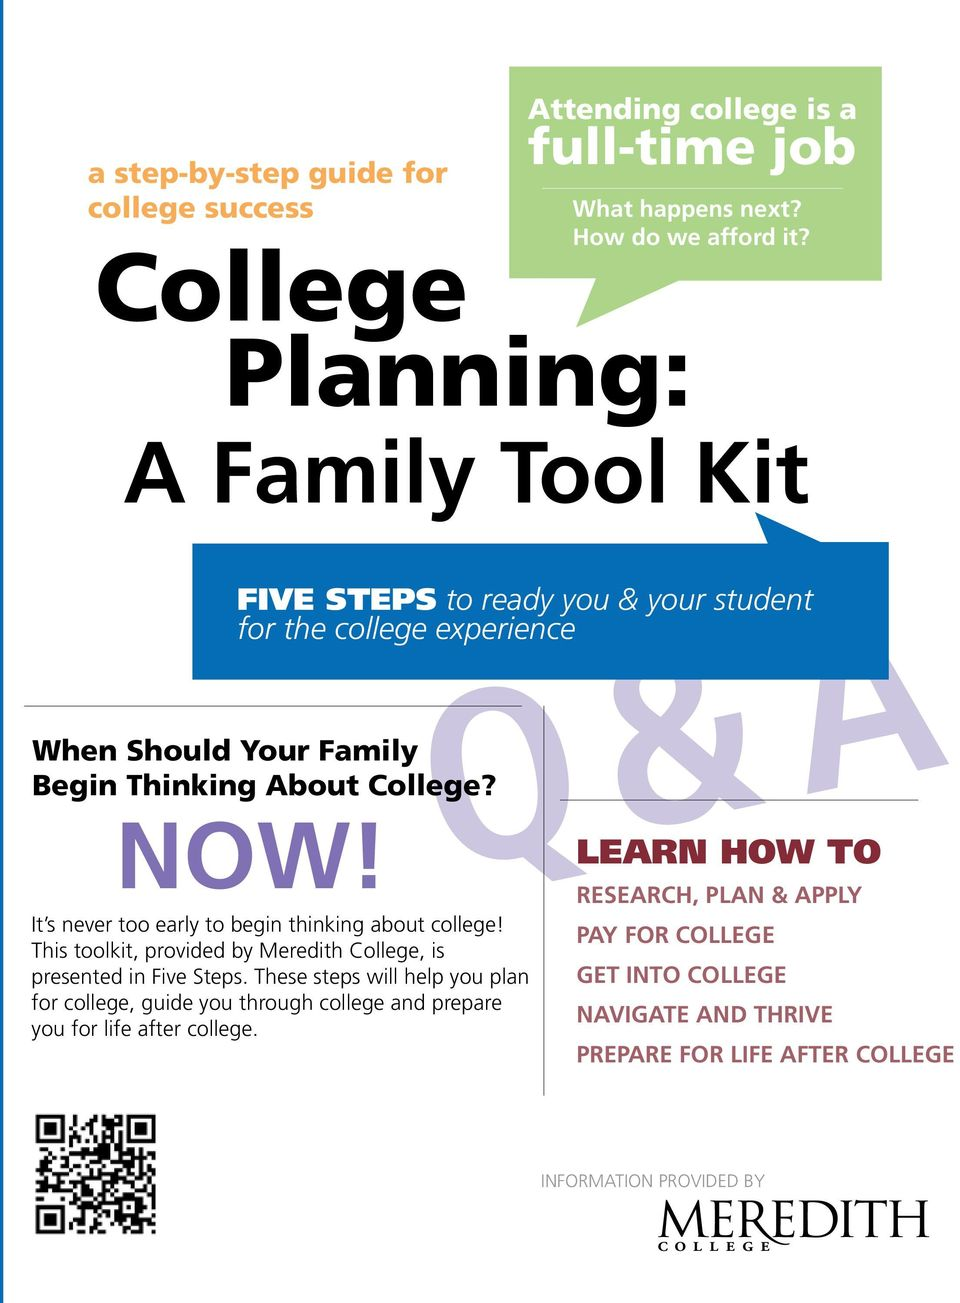 It s never too early to begin thinking about college! This toolkit, provided by Meredith College, is presented in Five Steps.